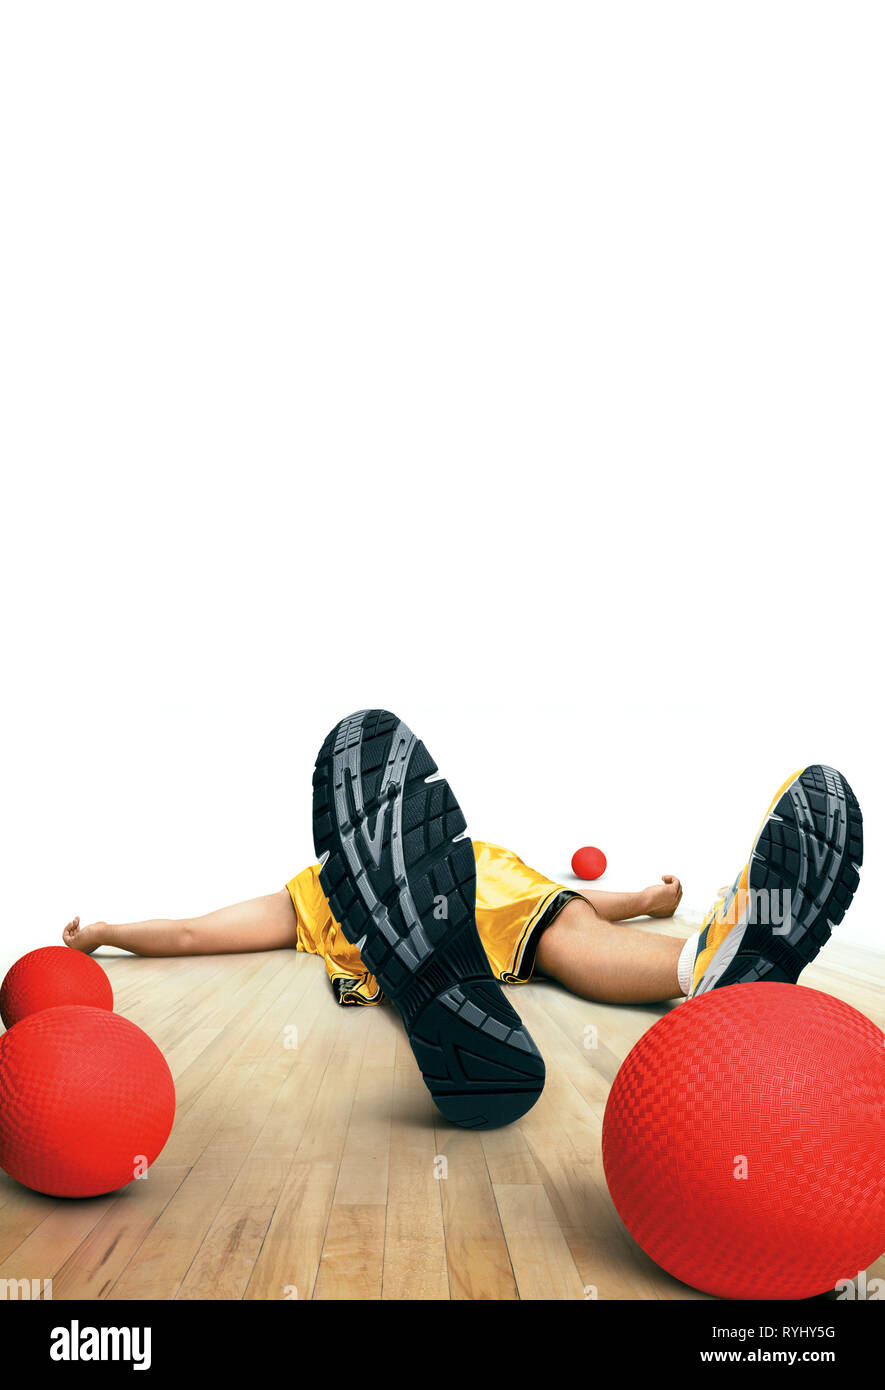 Dodgeball Stock Photos & Dodgeball Stock Images - Alamy